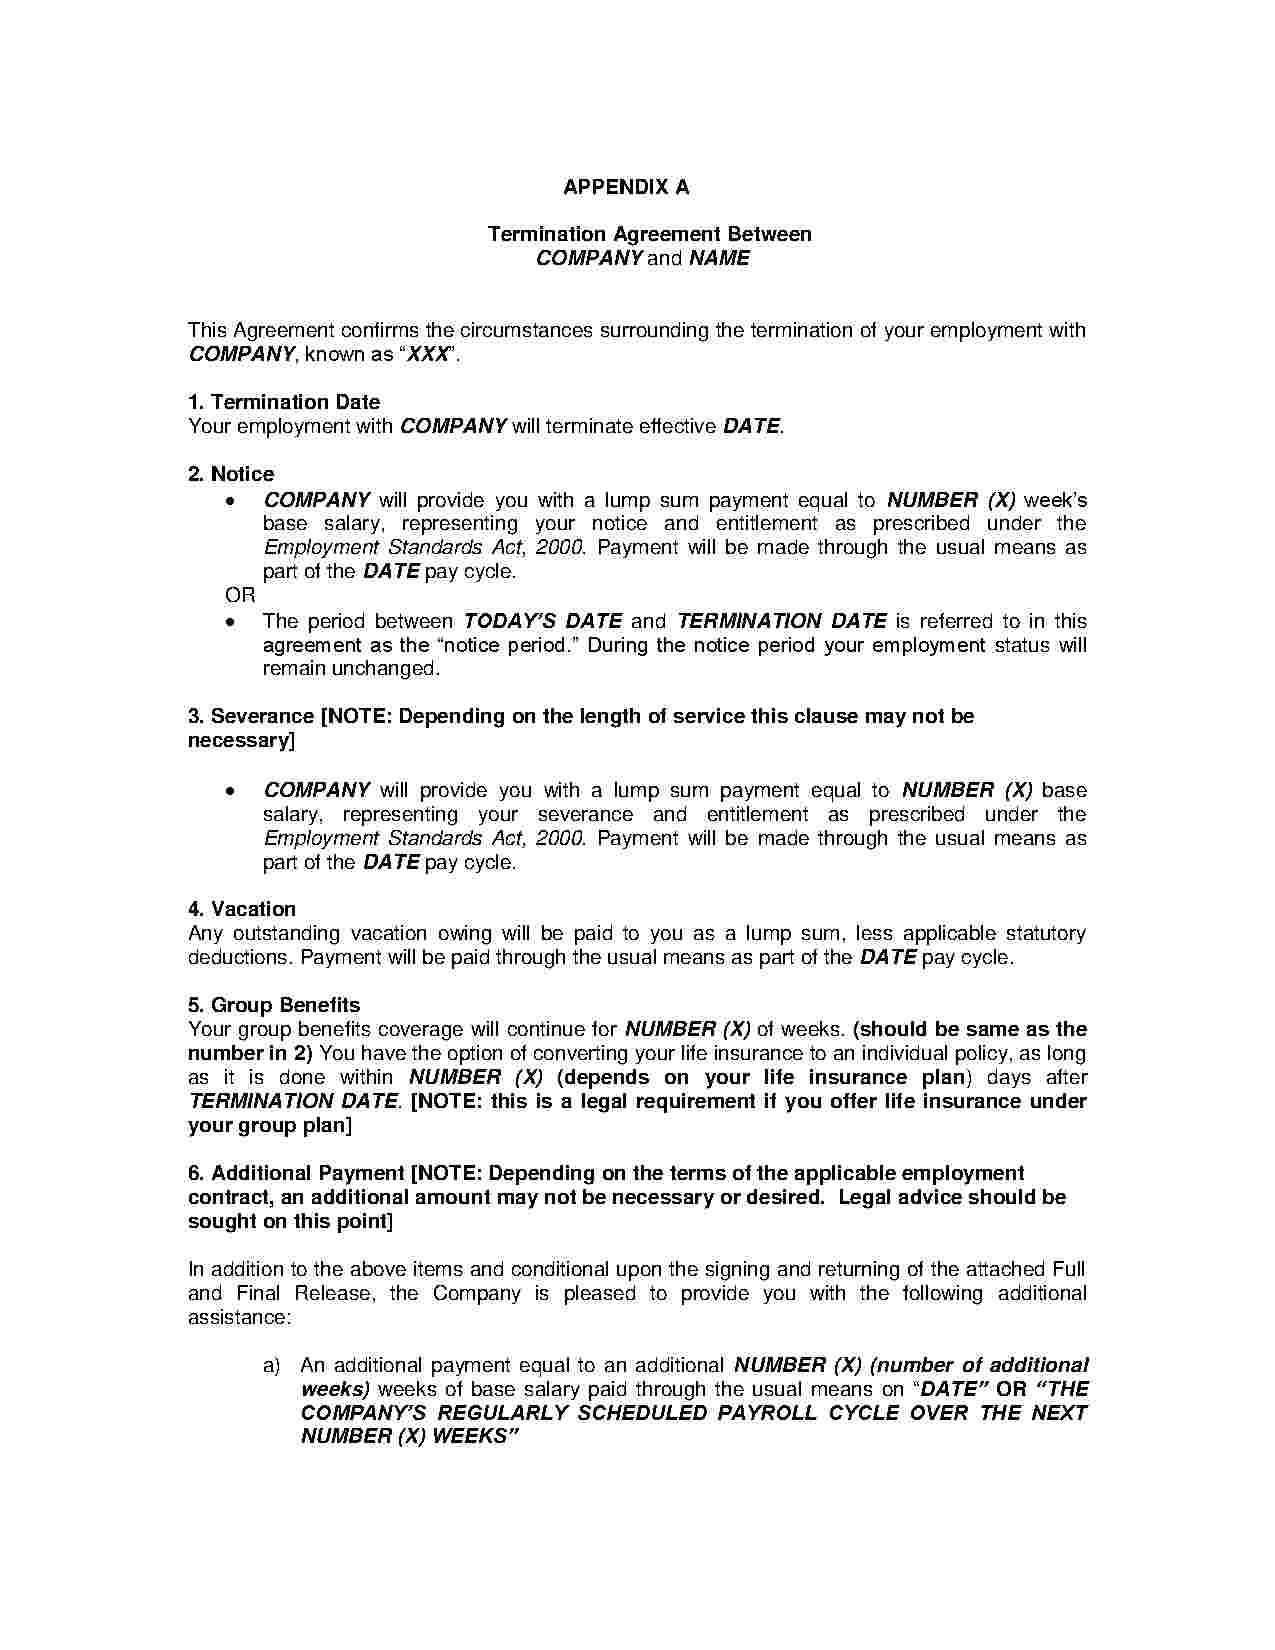 Termination And Mutual Release Agreement Mutual Rescission And Release Agreement Templates Hunter